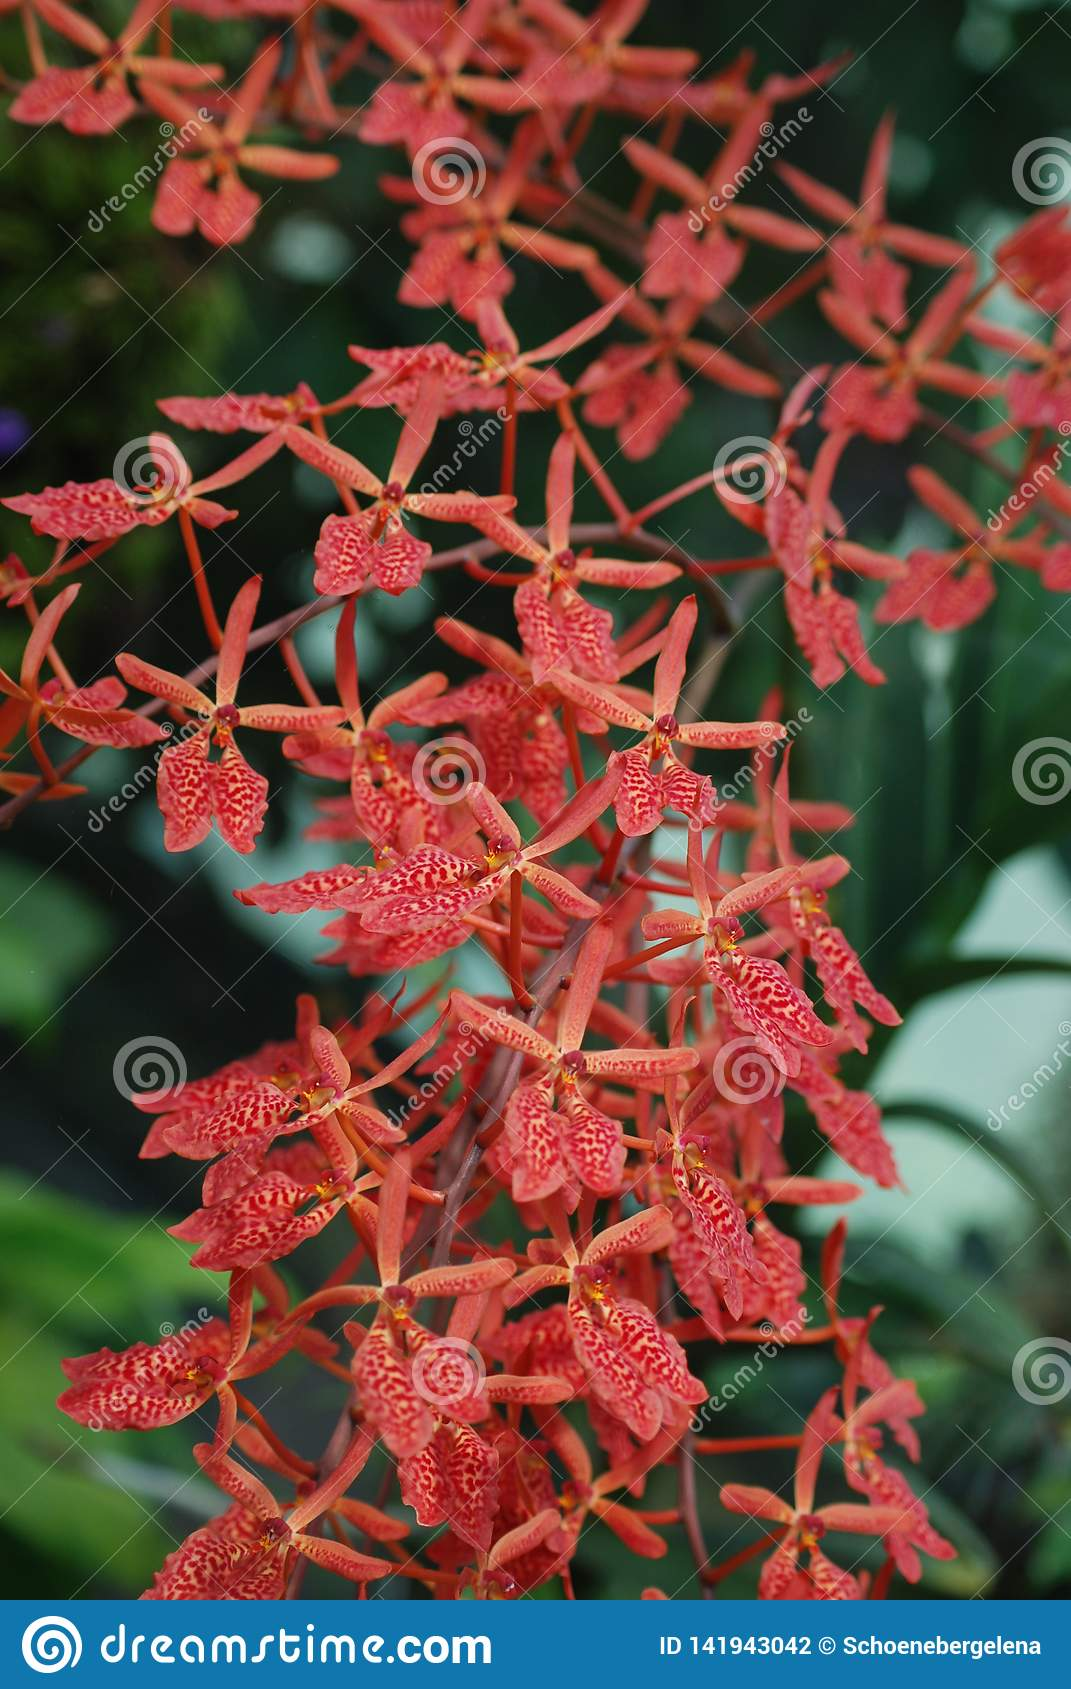 Coral Red Orchid Blooms - Feng Shui Plants